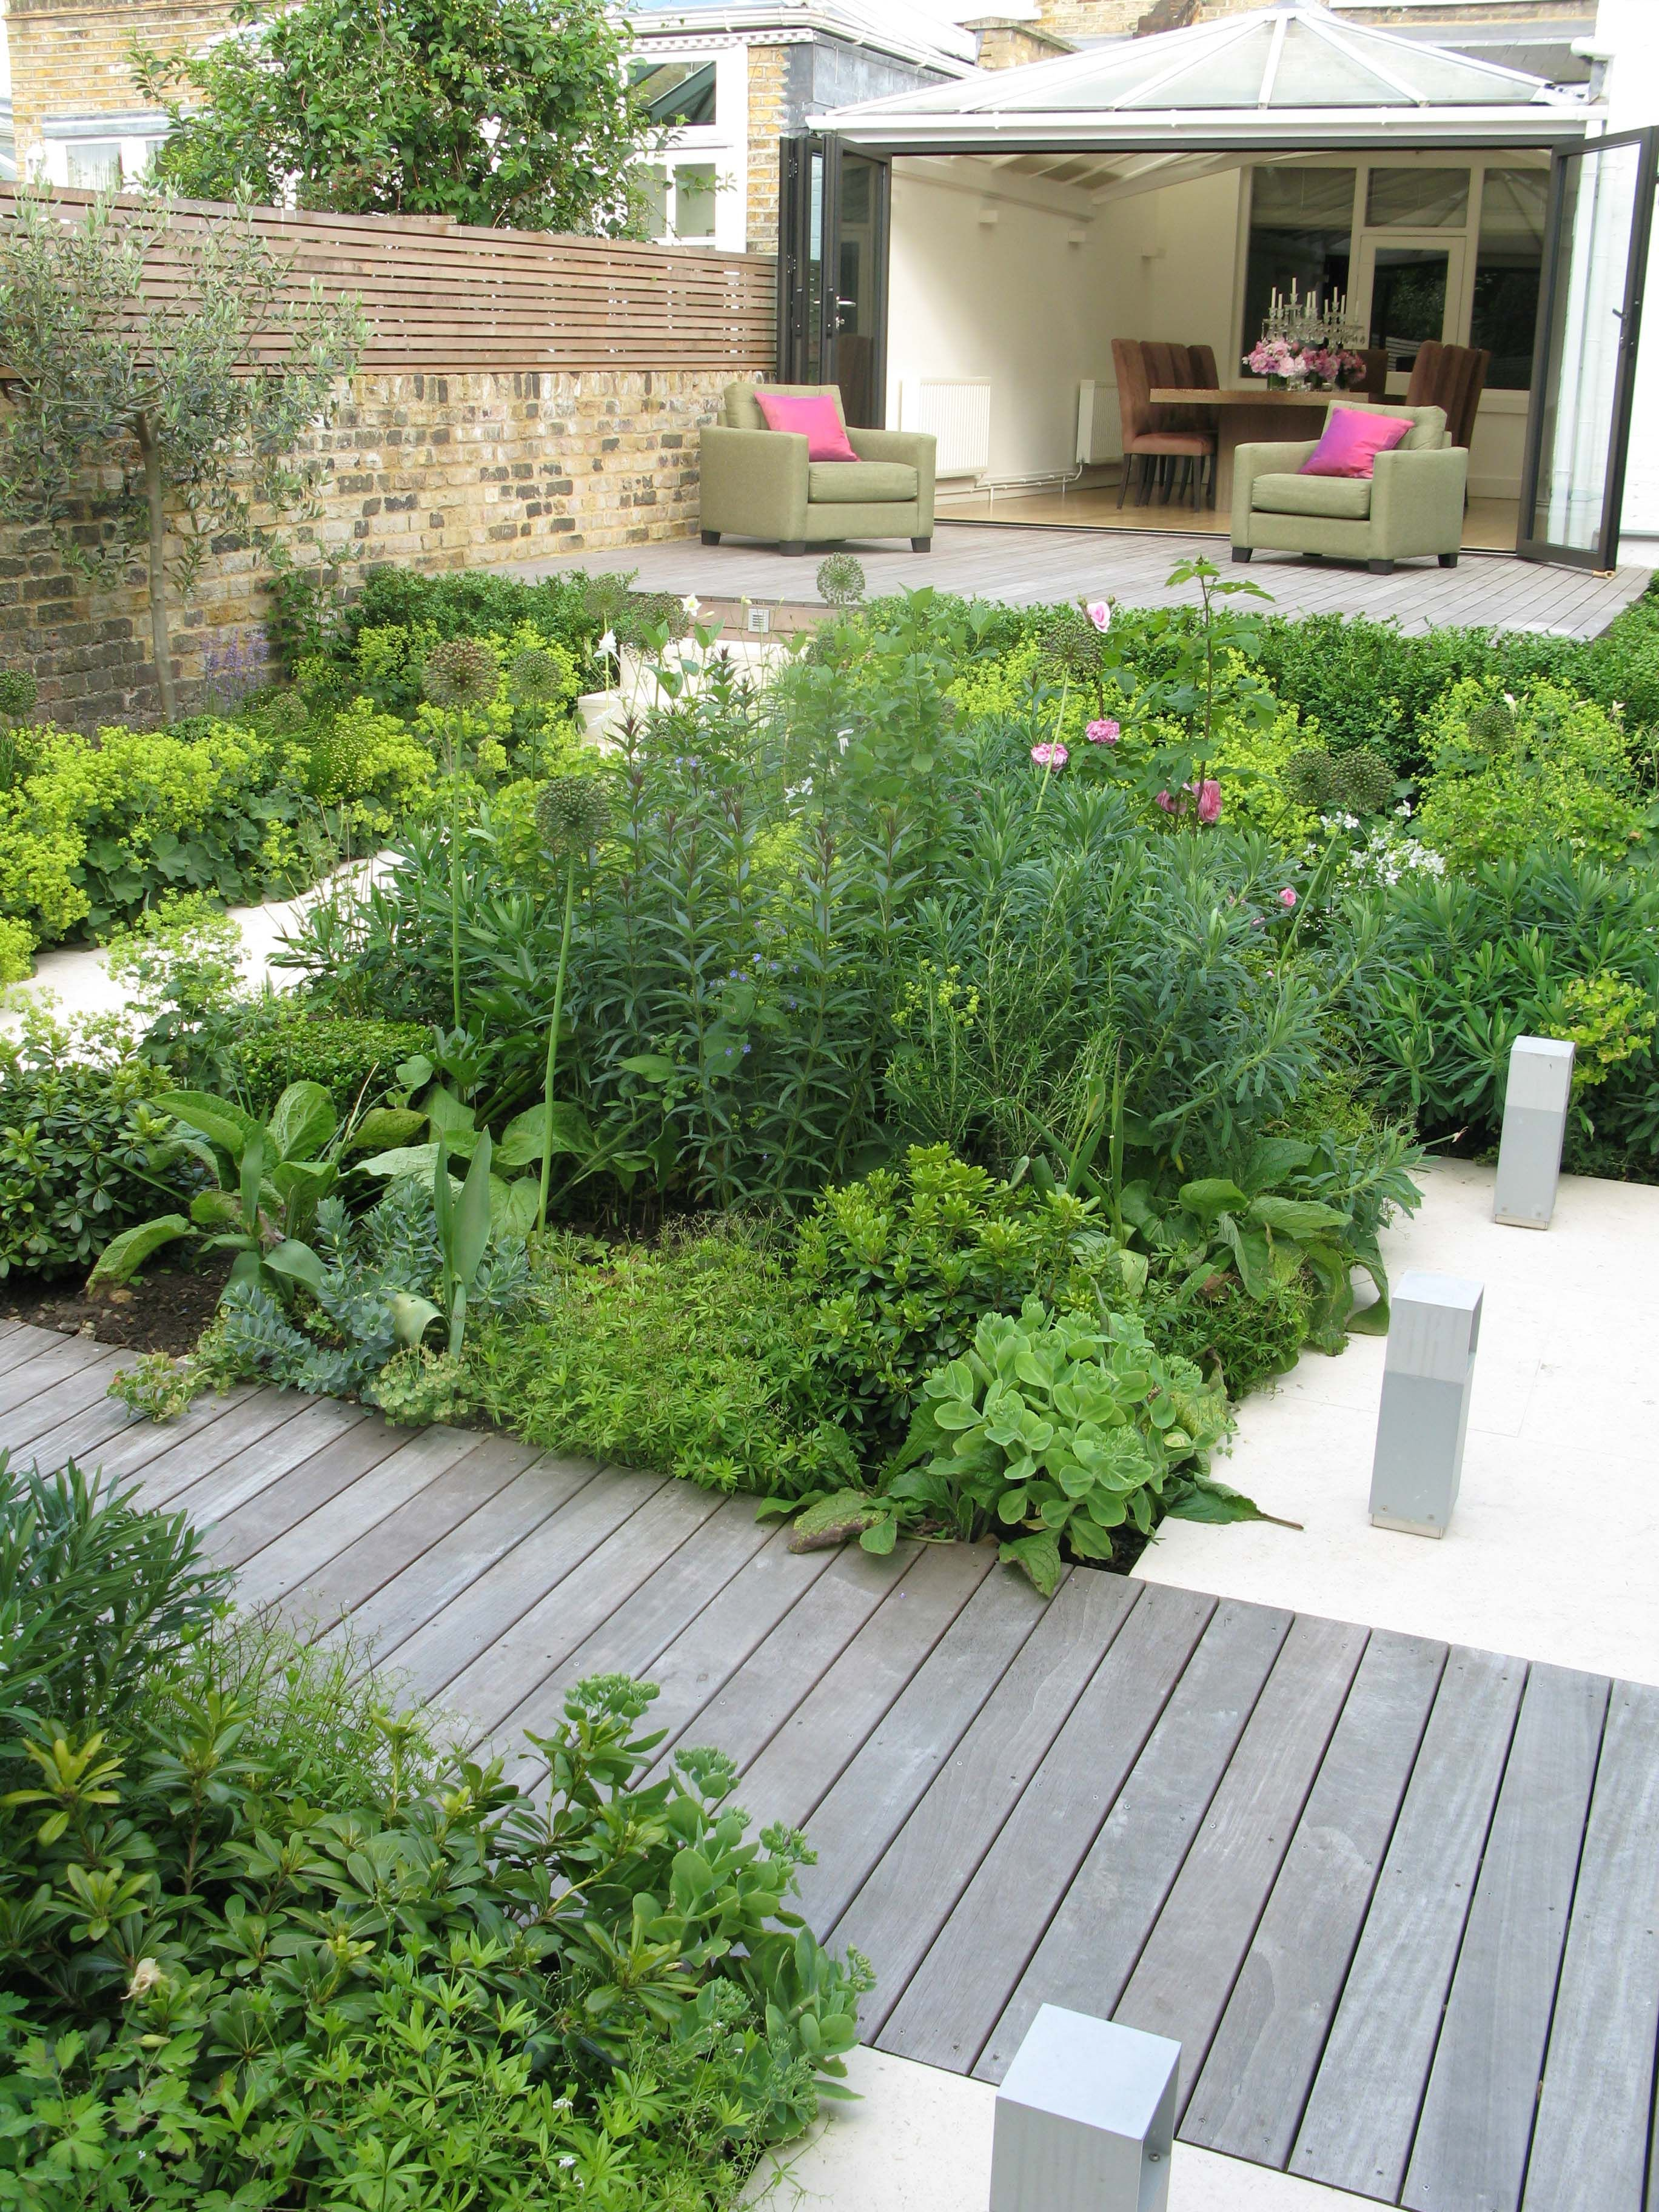 Pin by Nick McCullough, APLD on GARDENS | Garden, Small ... Food Design Small Gardens on small food gift ideas, 4 foot garden, small food safe boxes, small gardens landscaping, small food forest, small food recipes, small food house, raised bed vegetable garden, small front gardens, small food border, small domino's pizza, small food plants, small food elevator, small food building, small food toys, small food design, small food business, small food games, small food shop, sustainable vegetable garden,